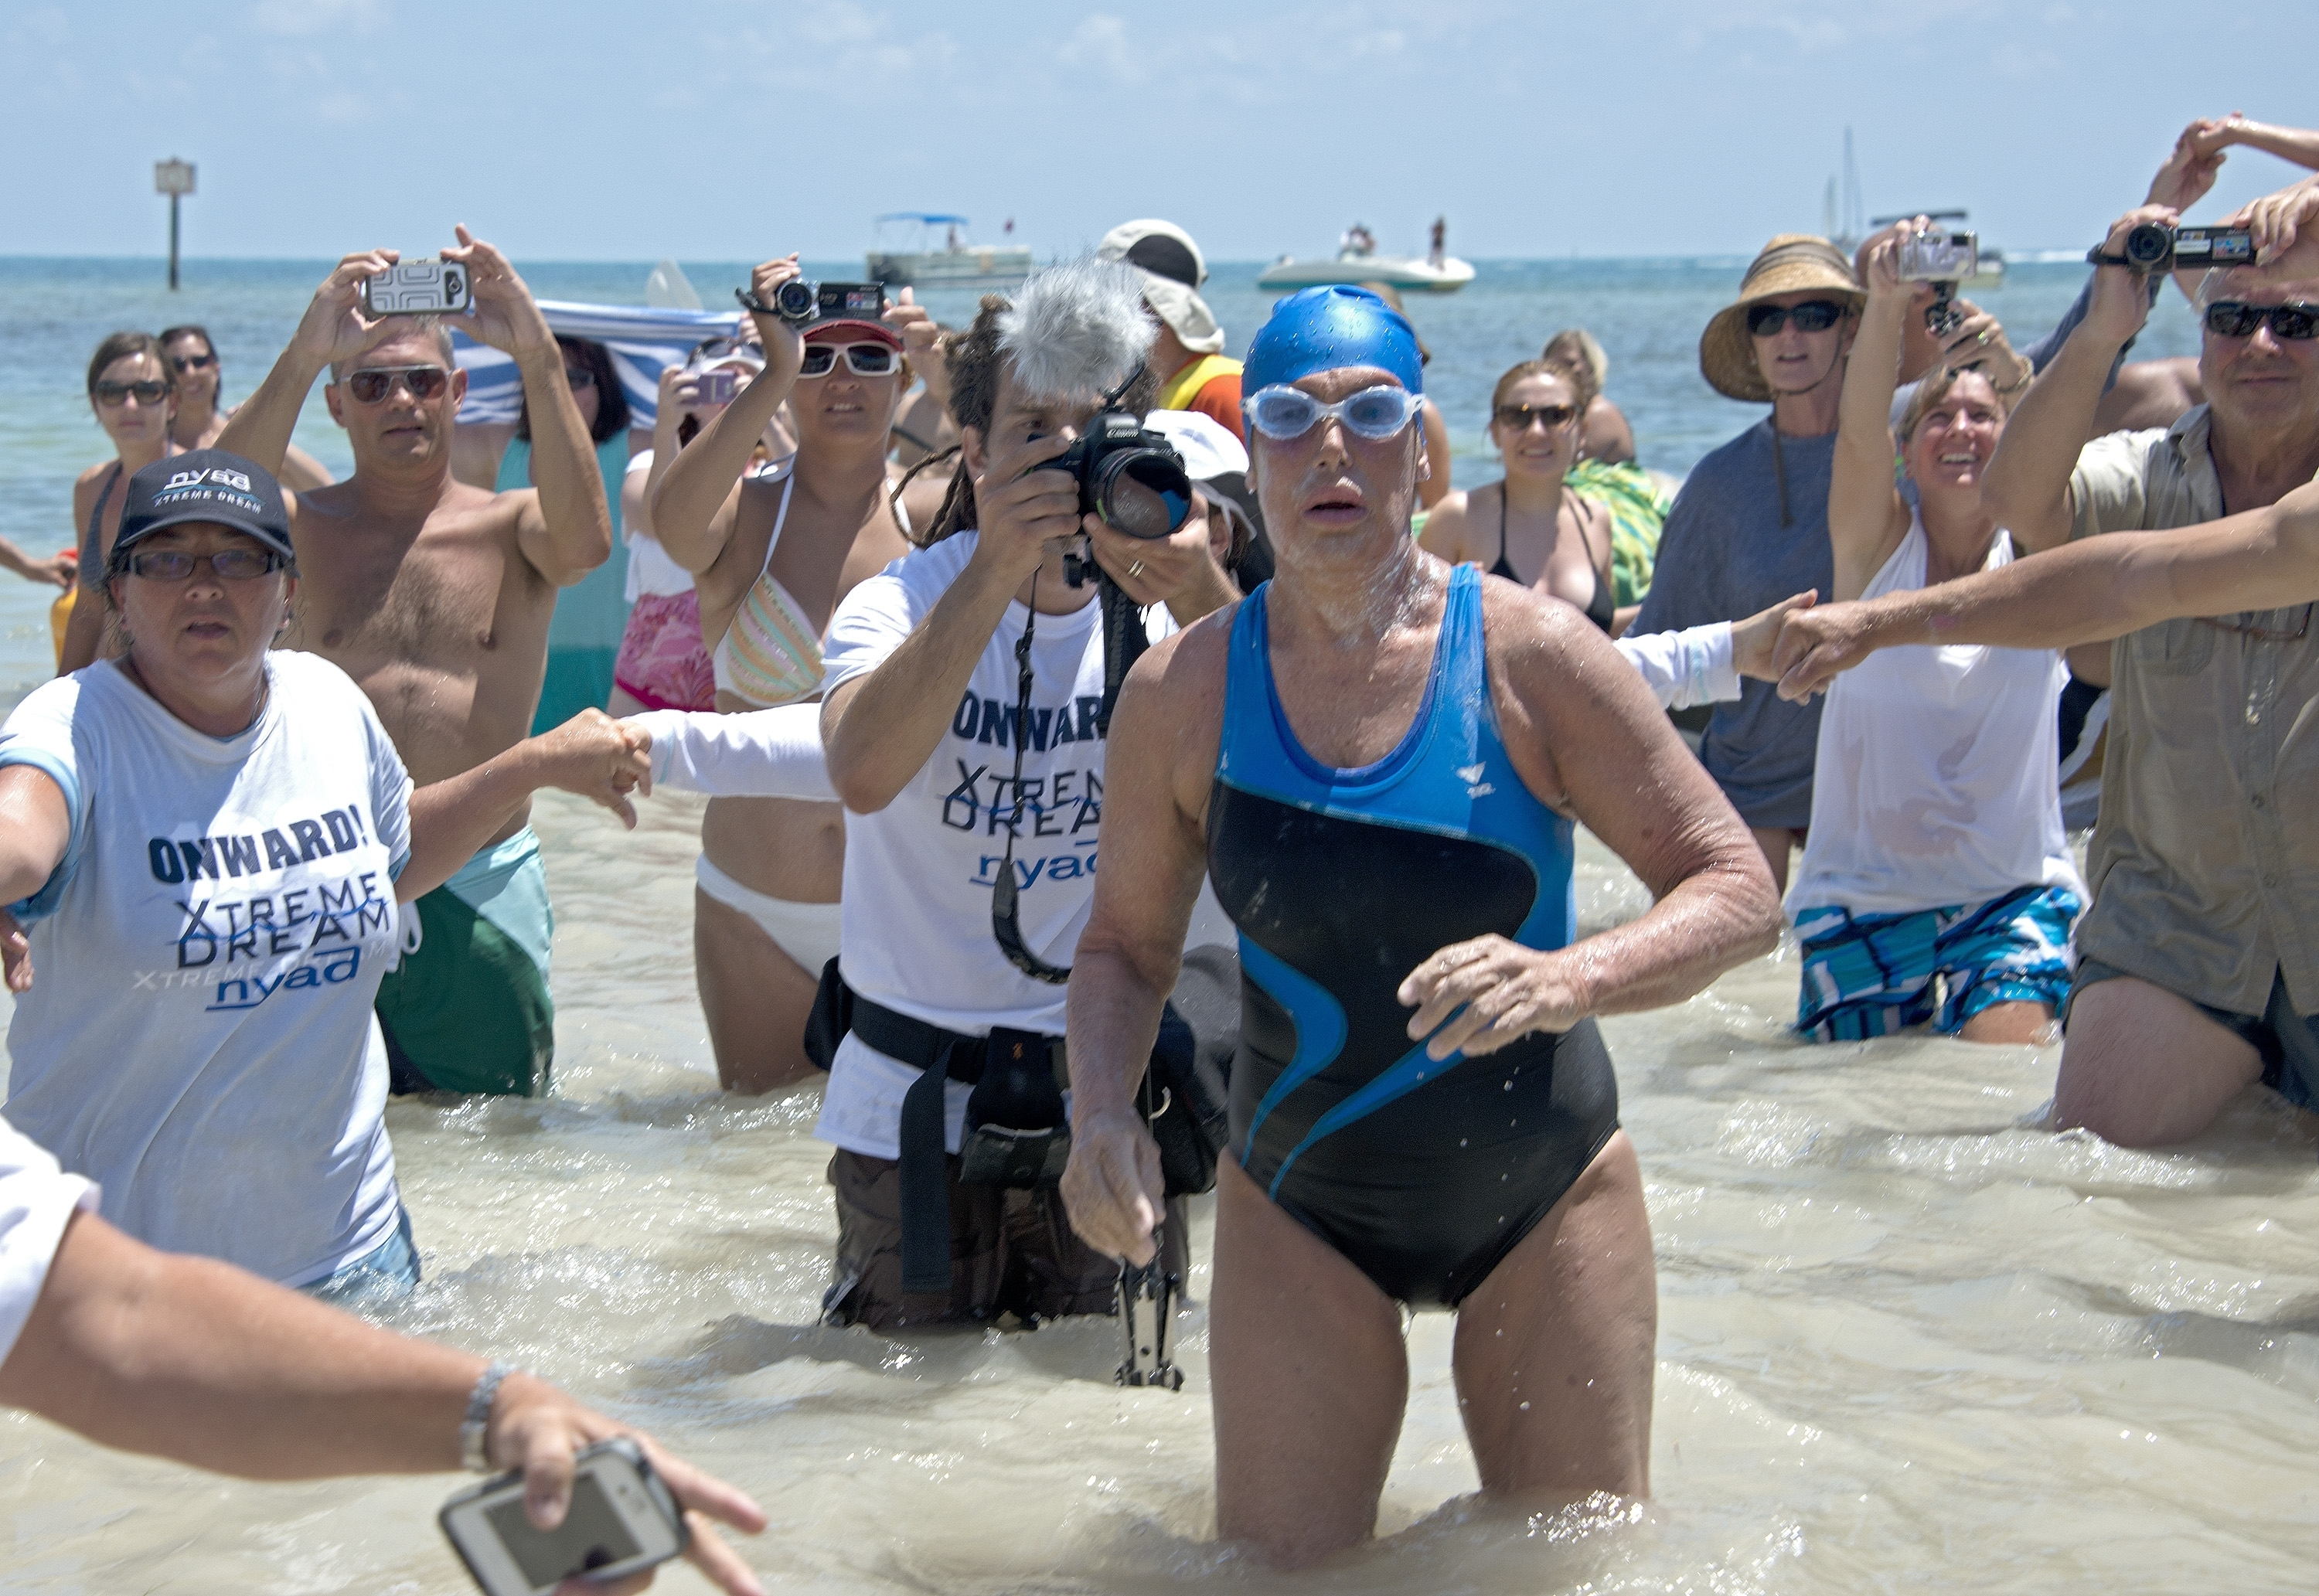 Diana Nyad emerges from the water after completing a 110-mile swim from Cuba to Key West, Fla. (AP photo)